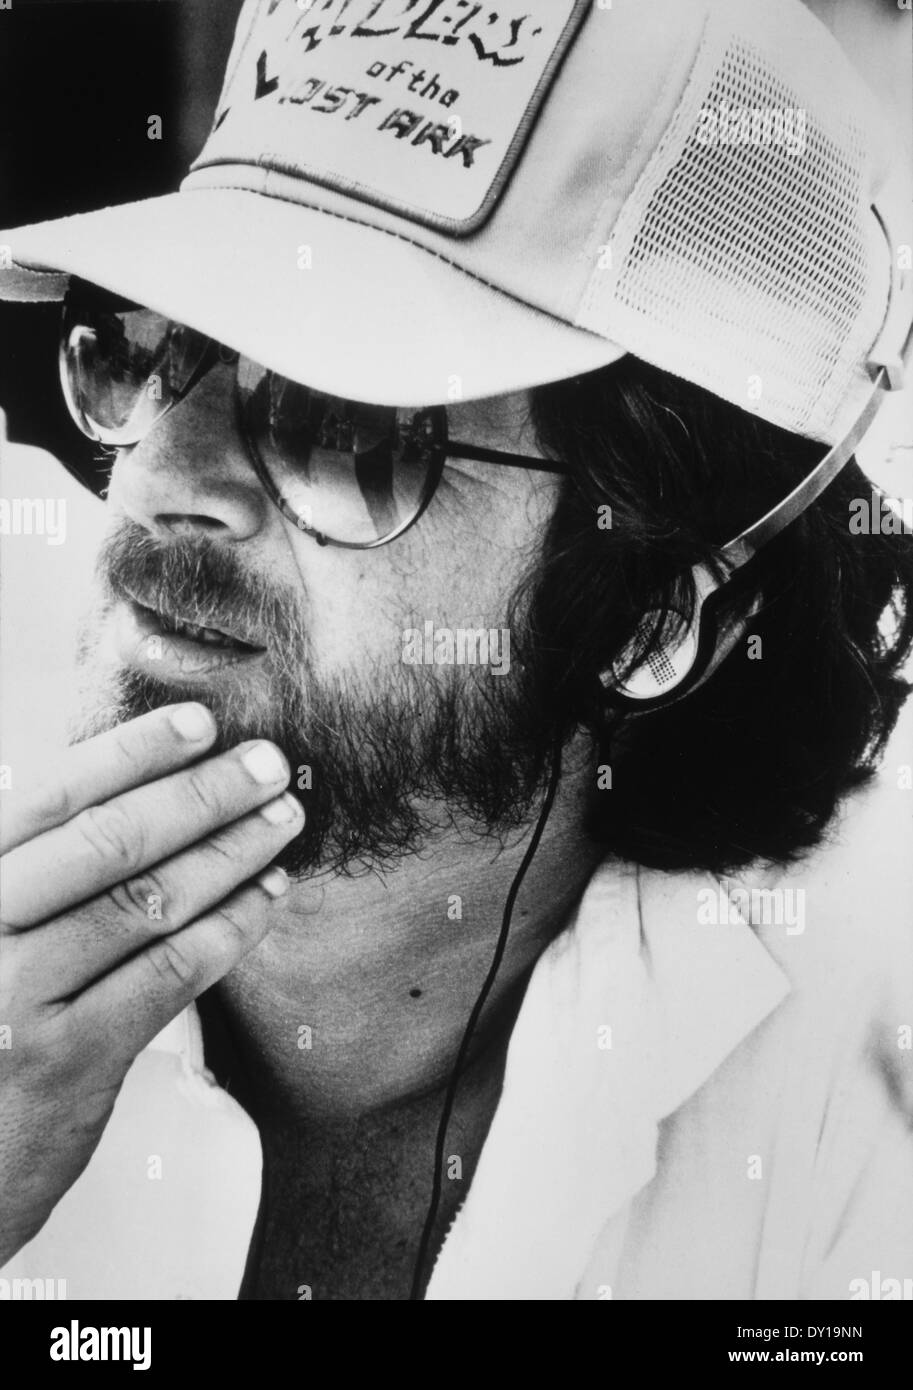 Steven Spielberg, Director, on-set of the Film, 'Raiders of the Lost Ark', 1981 - Stock Image